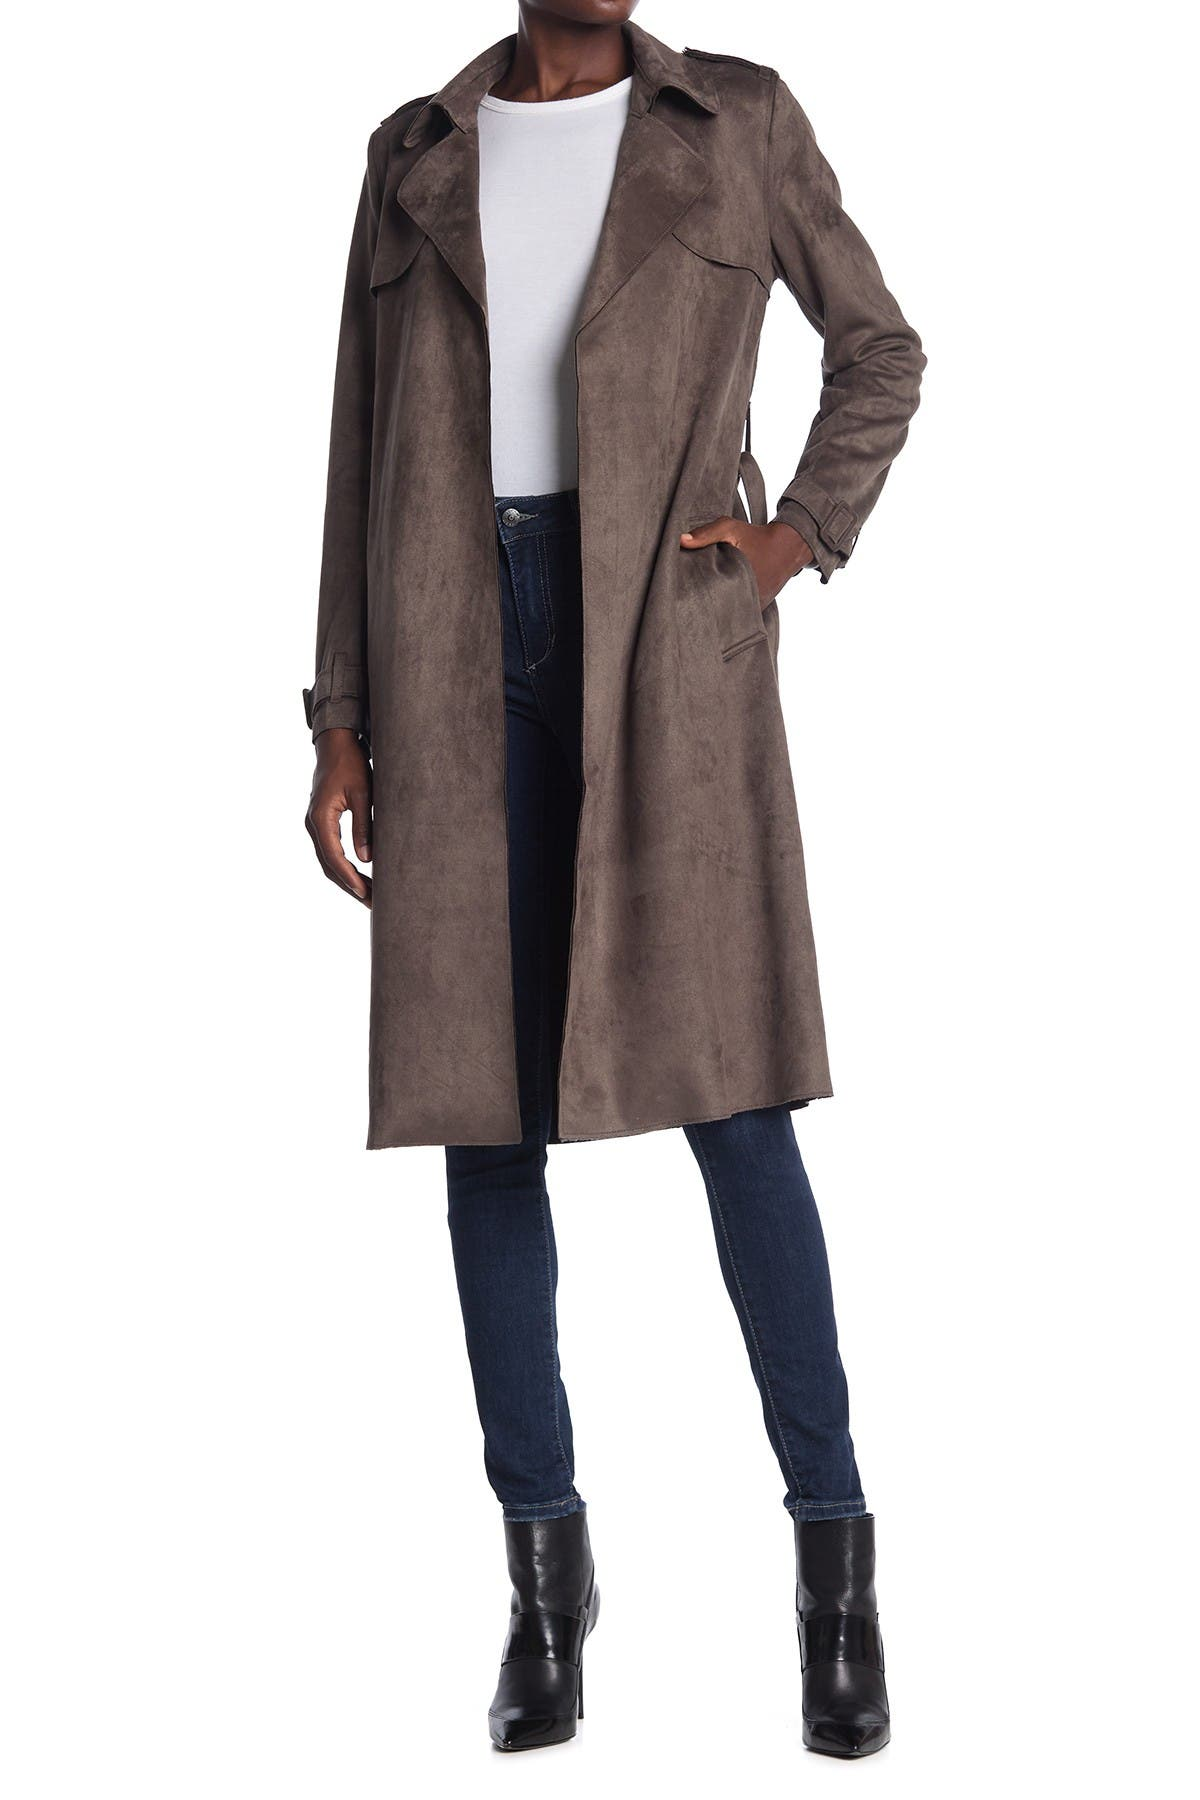 Image of Philosophy Apparel Belted Faux Suede Trench Coat